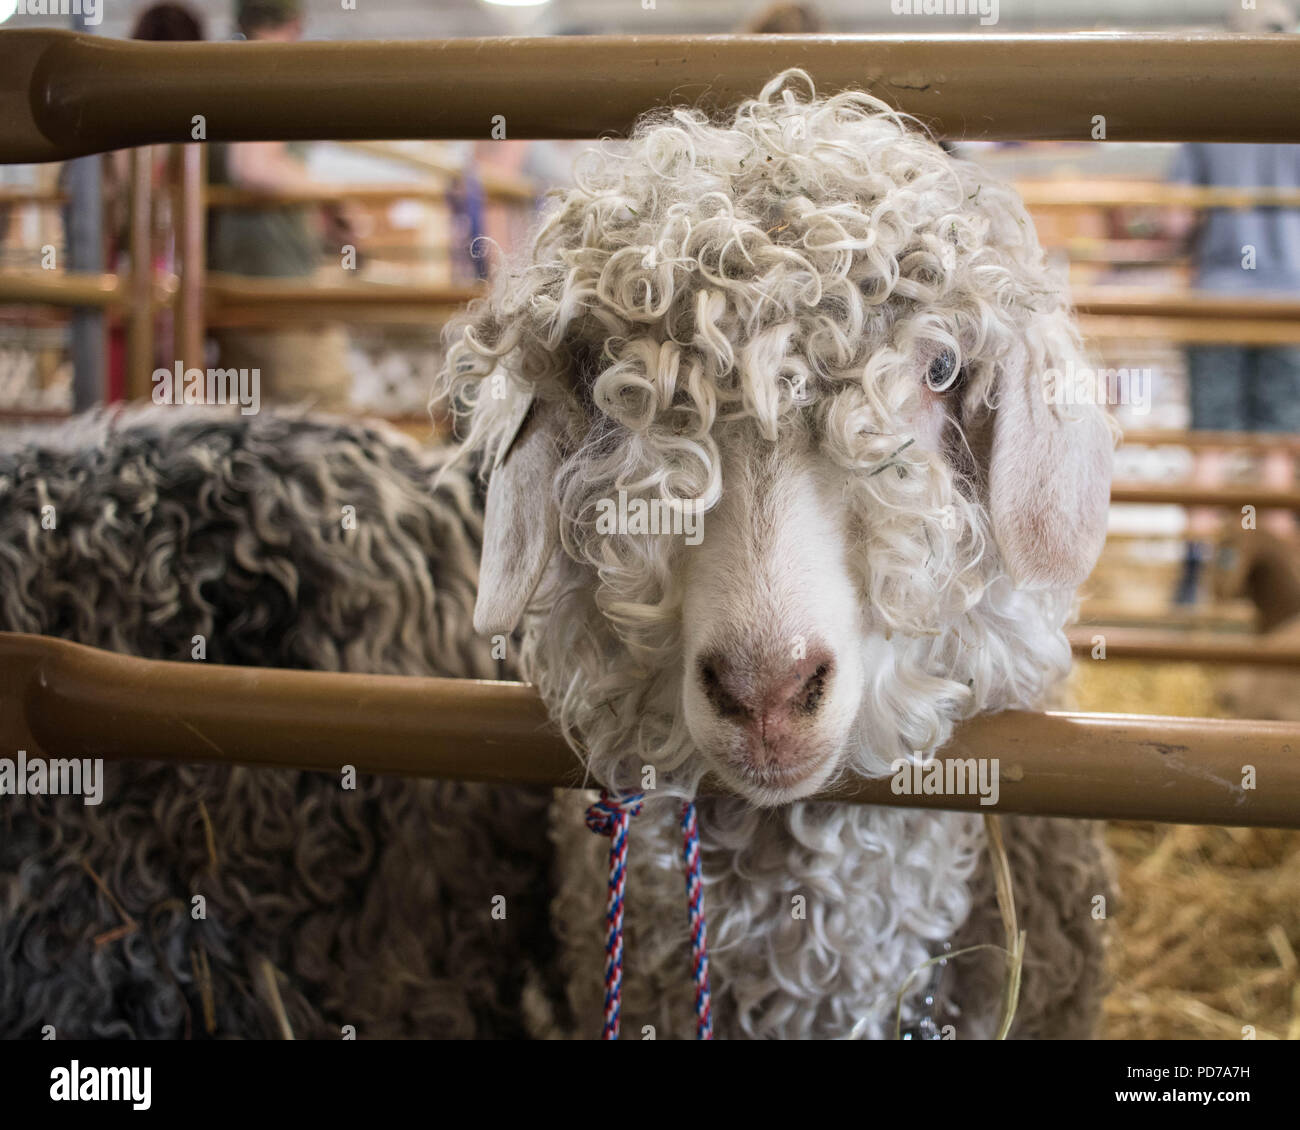 A white sheep waits for auction at the Deschutes County Fair, Redmond, Oregon. - Stock Image